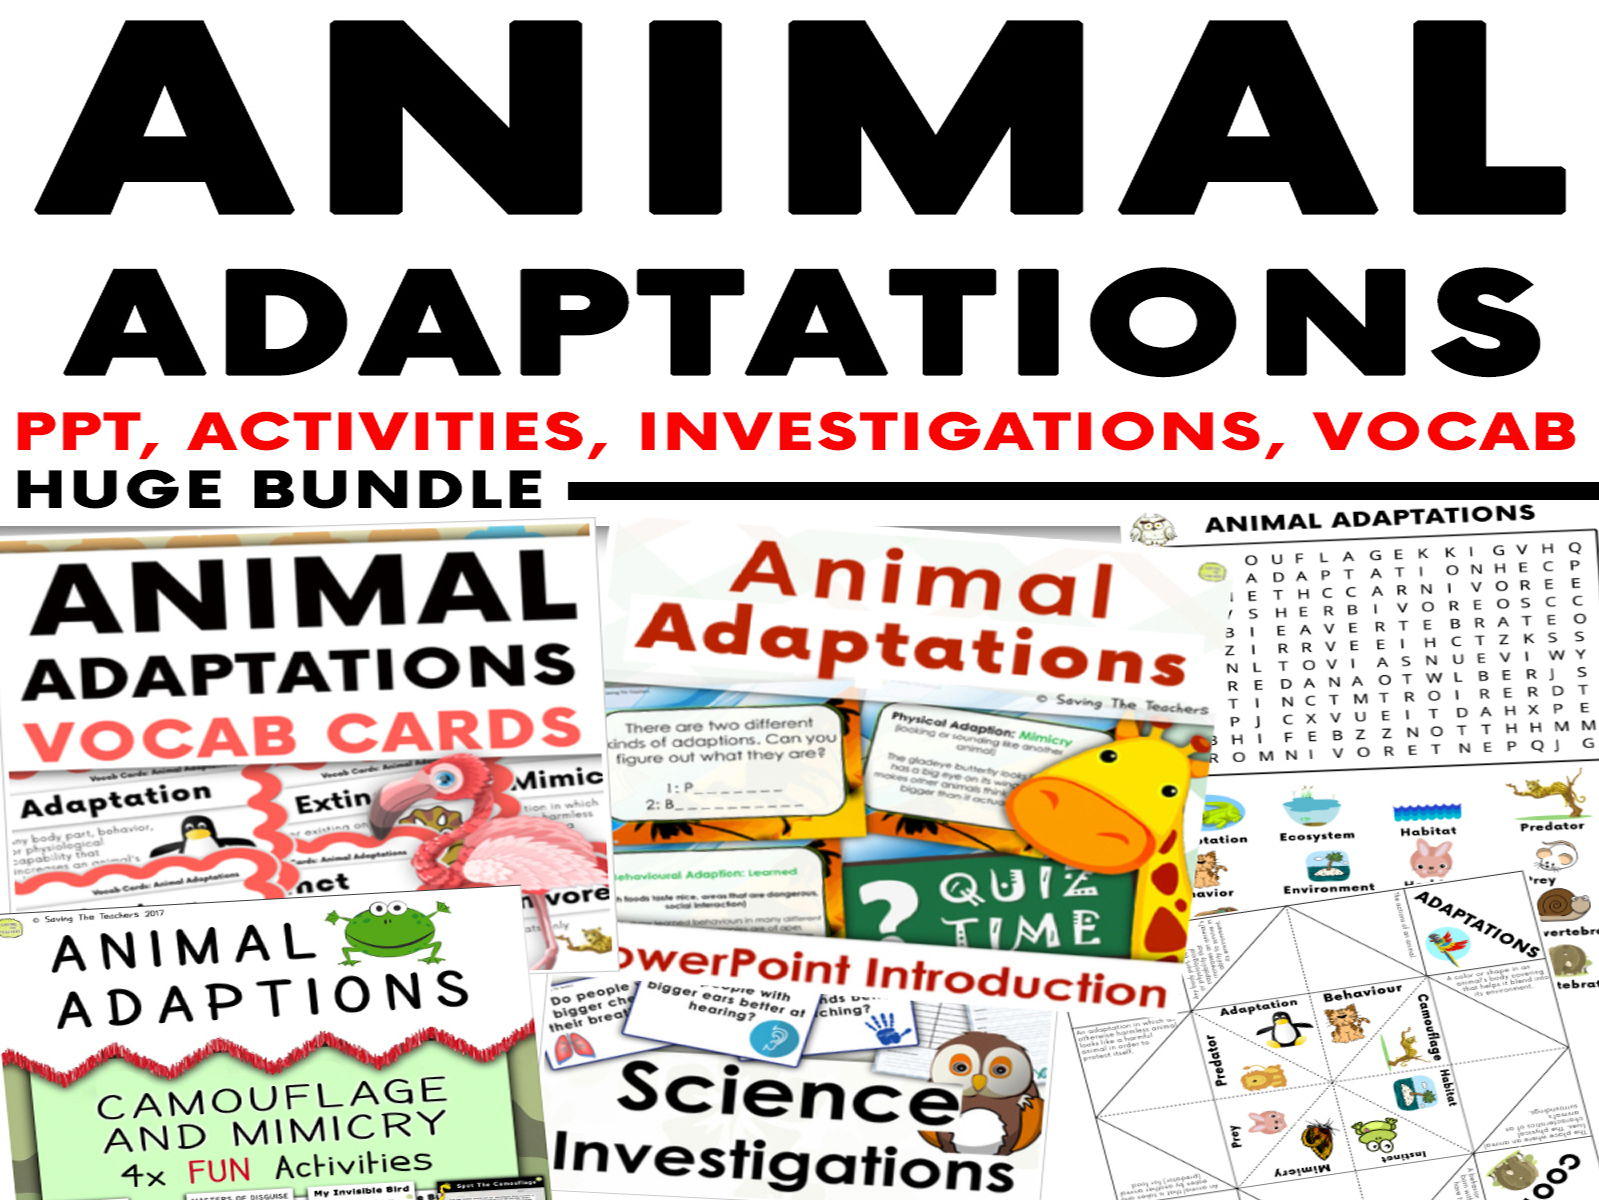 Animal Adaptation Huge Bundle - PowerPoint, Activities, Investigations & Vocab